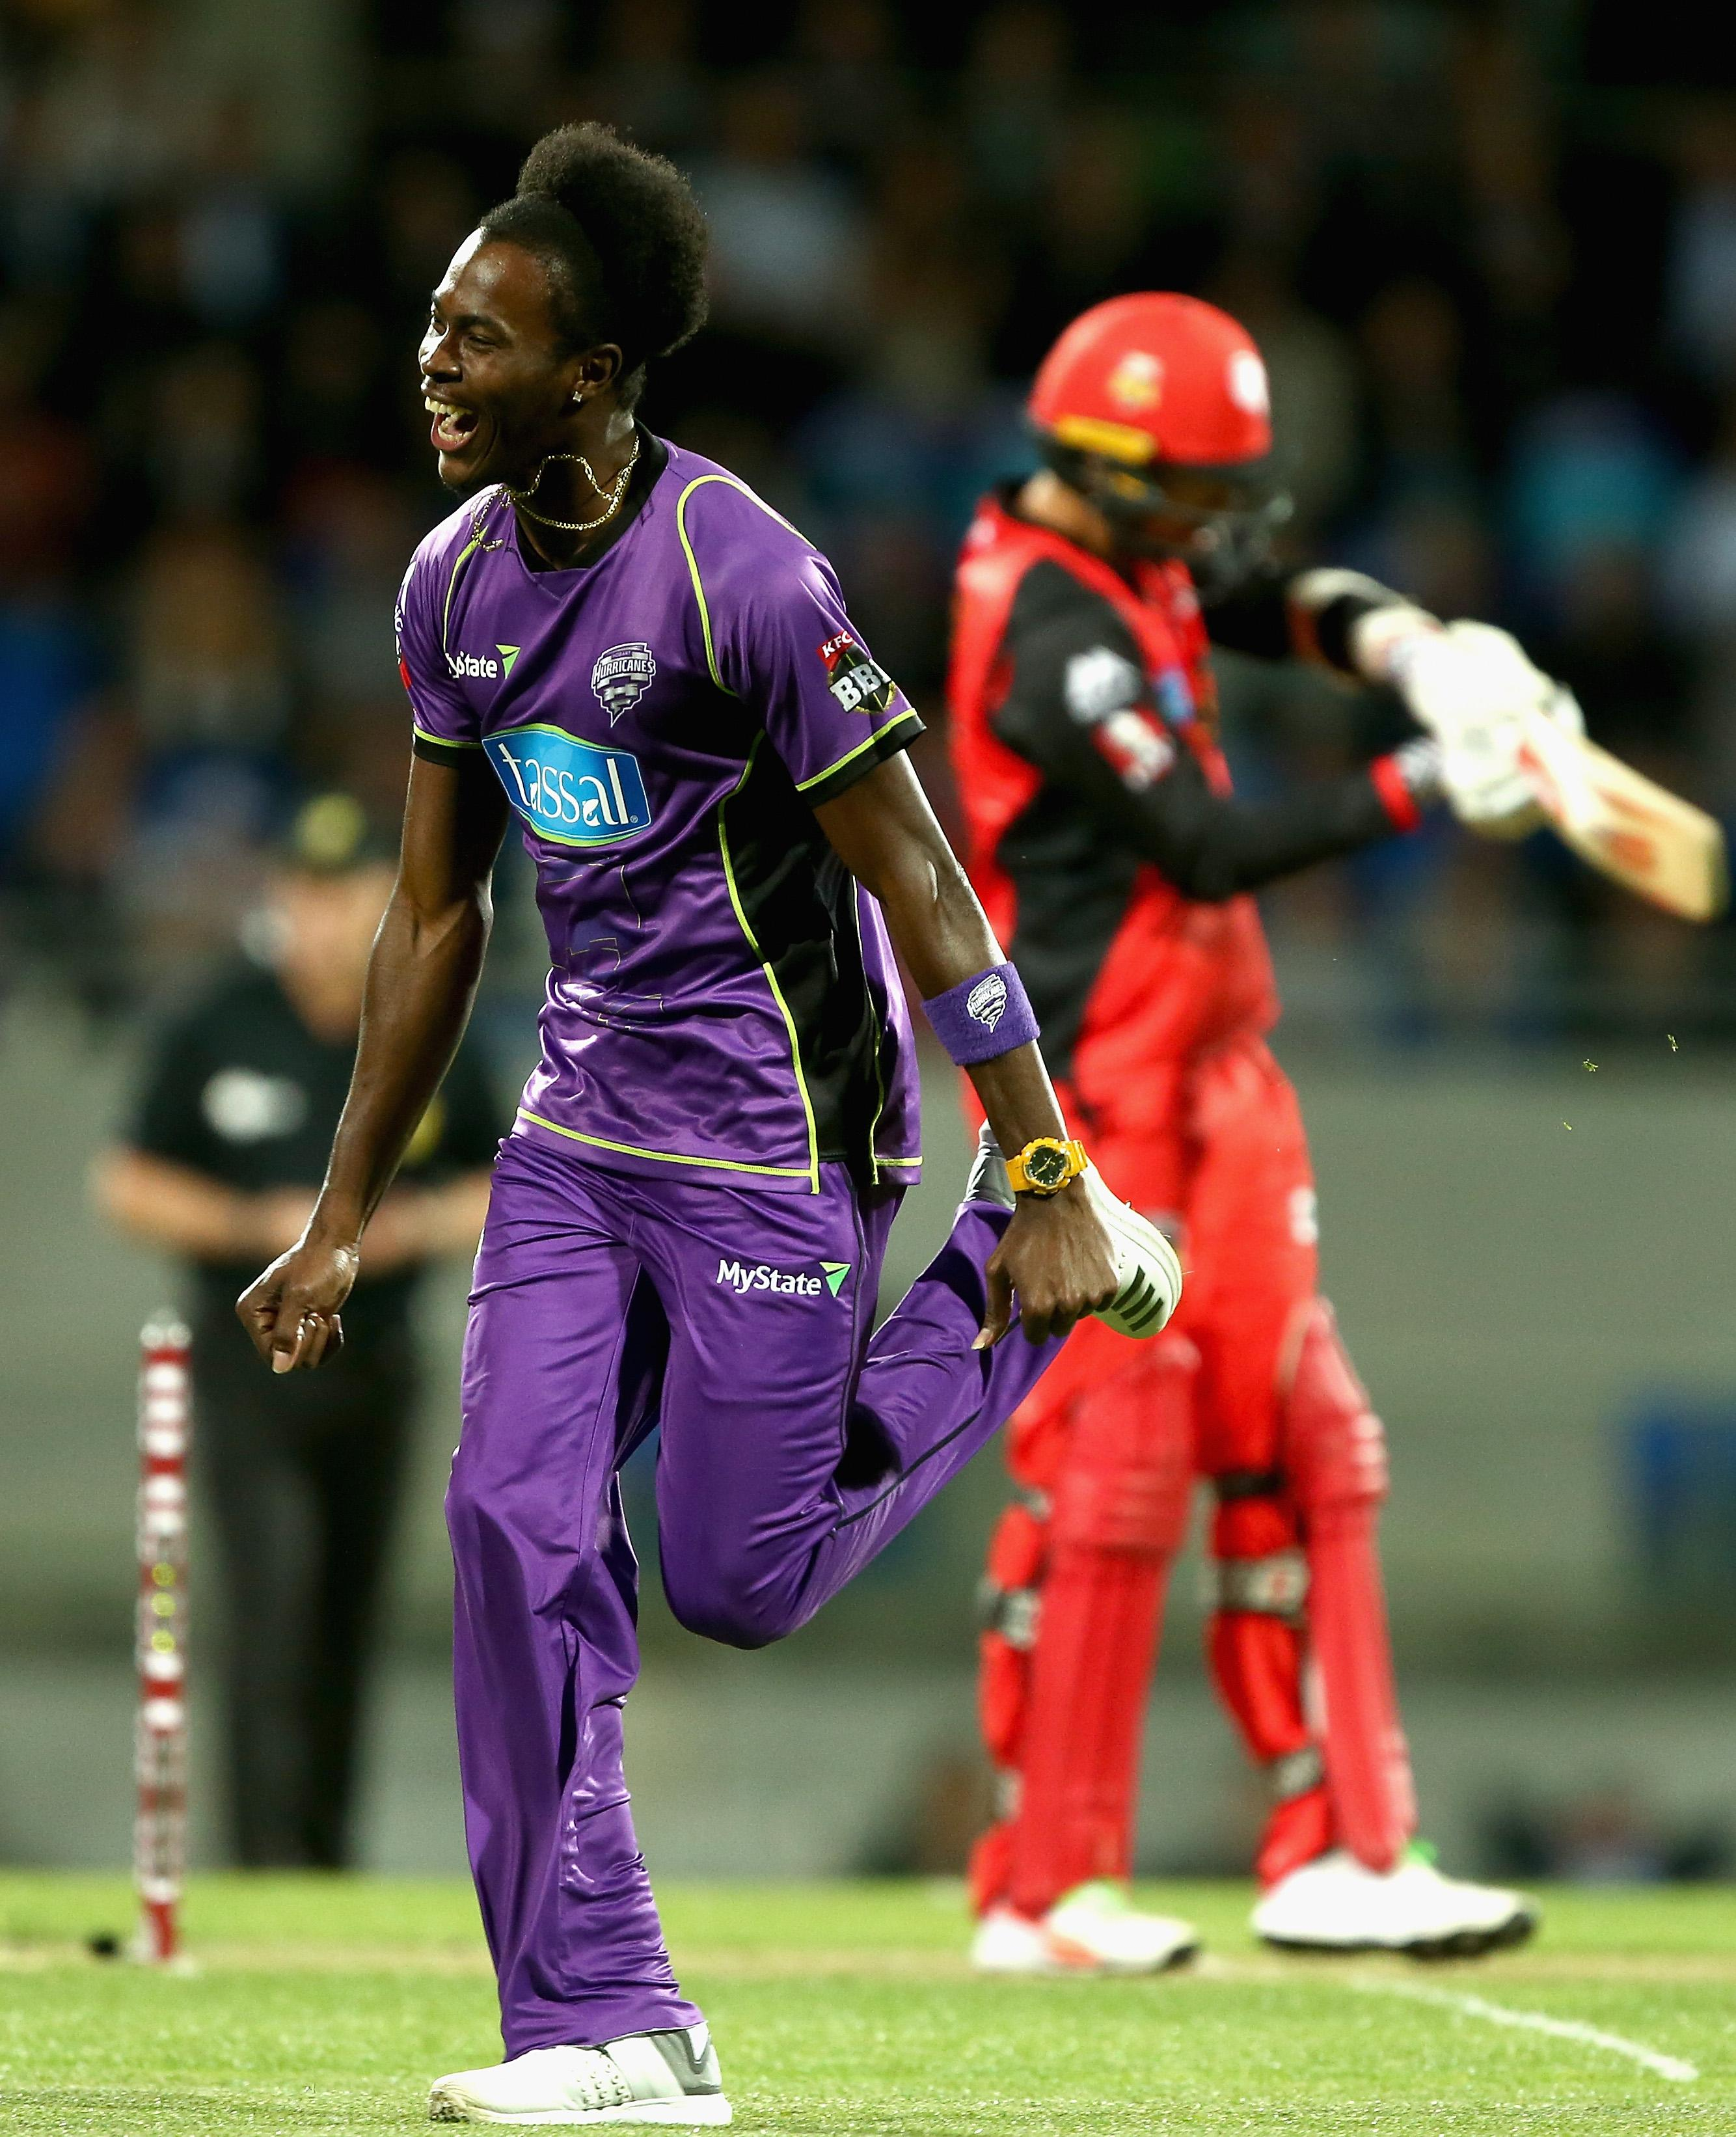 The news that Jofra Archer could be starring for England soon will be music to the ears of cricket fans